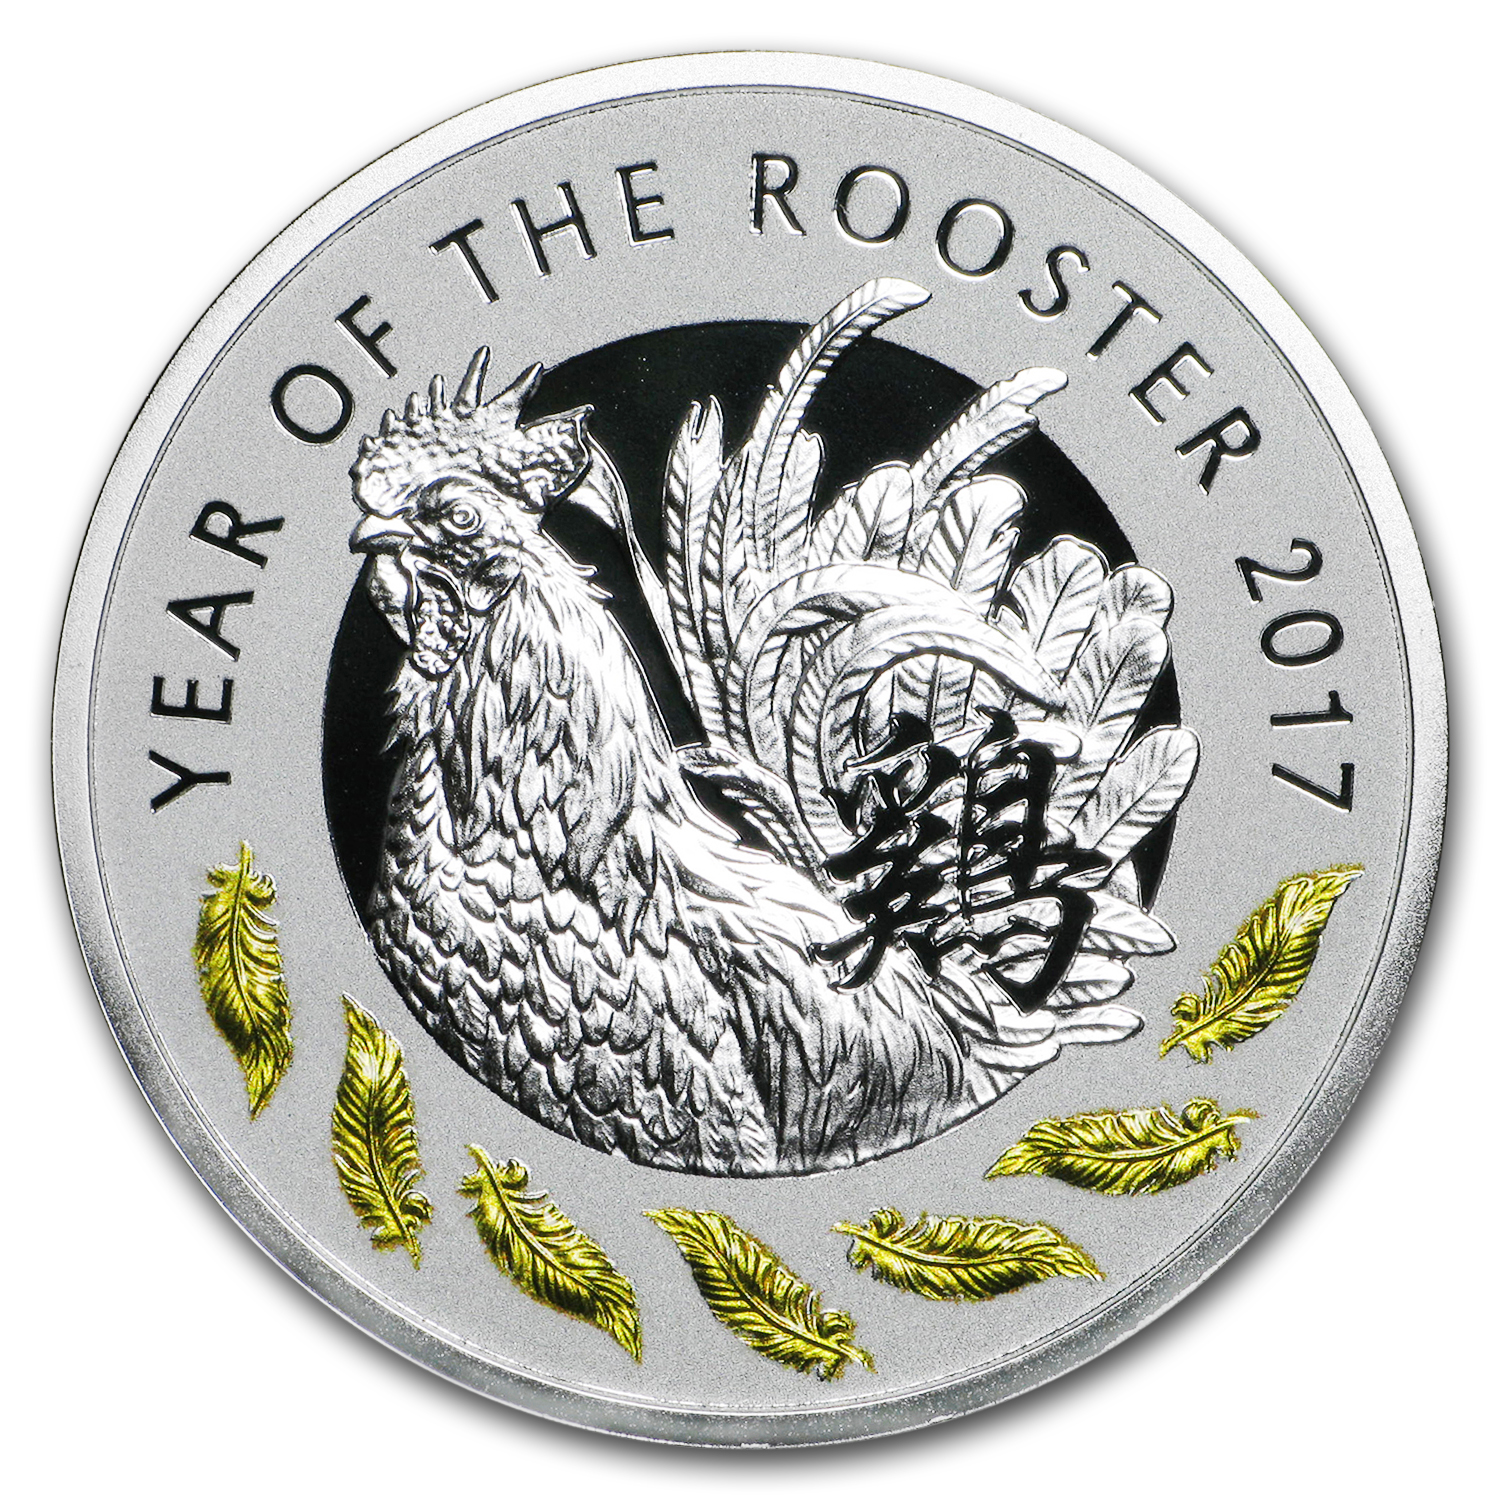 2017 Niue Silver Year of the Rooster Proof (Gilded)